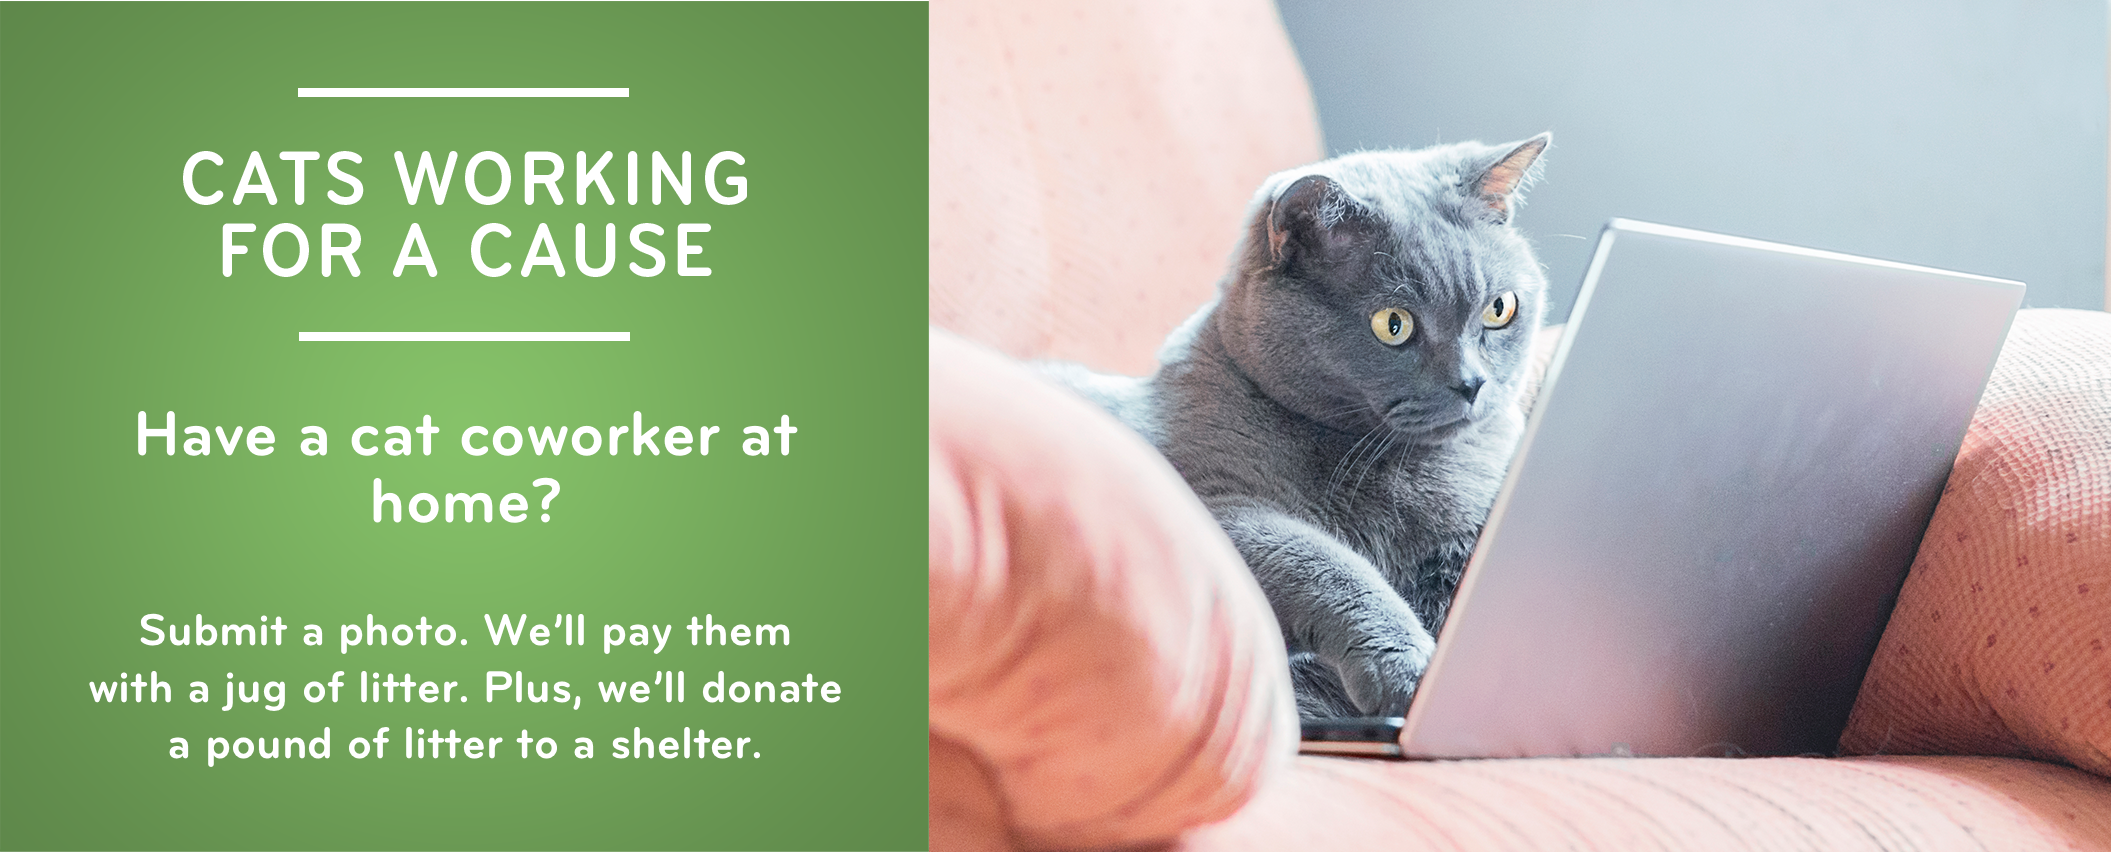 Cats Working for a Cause by Cat's Pride. Submit a photo of your cat coworker